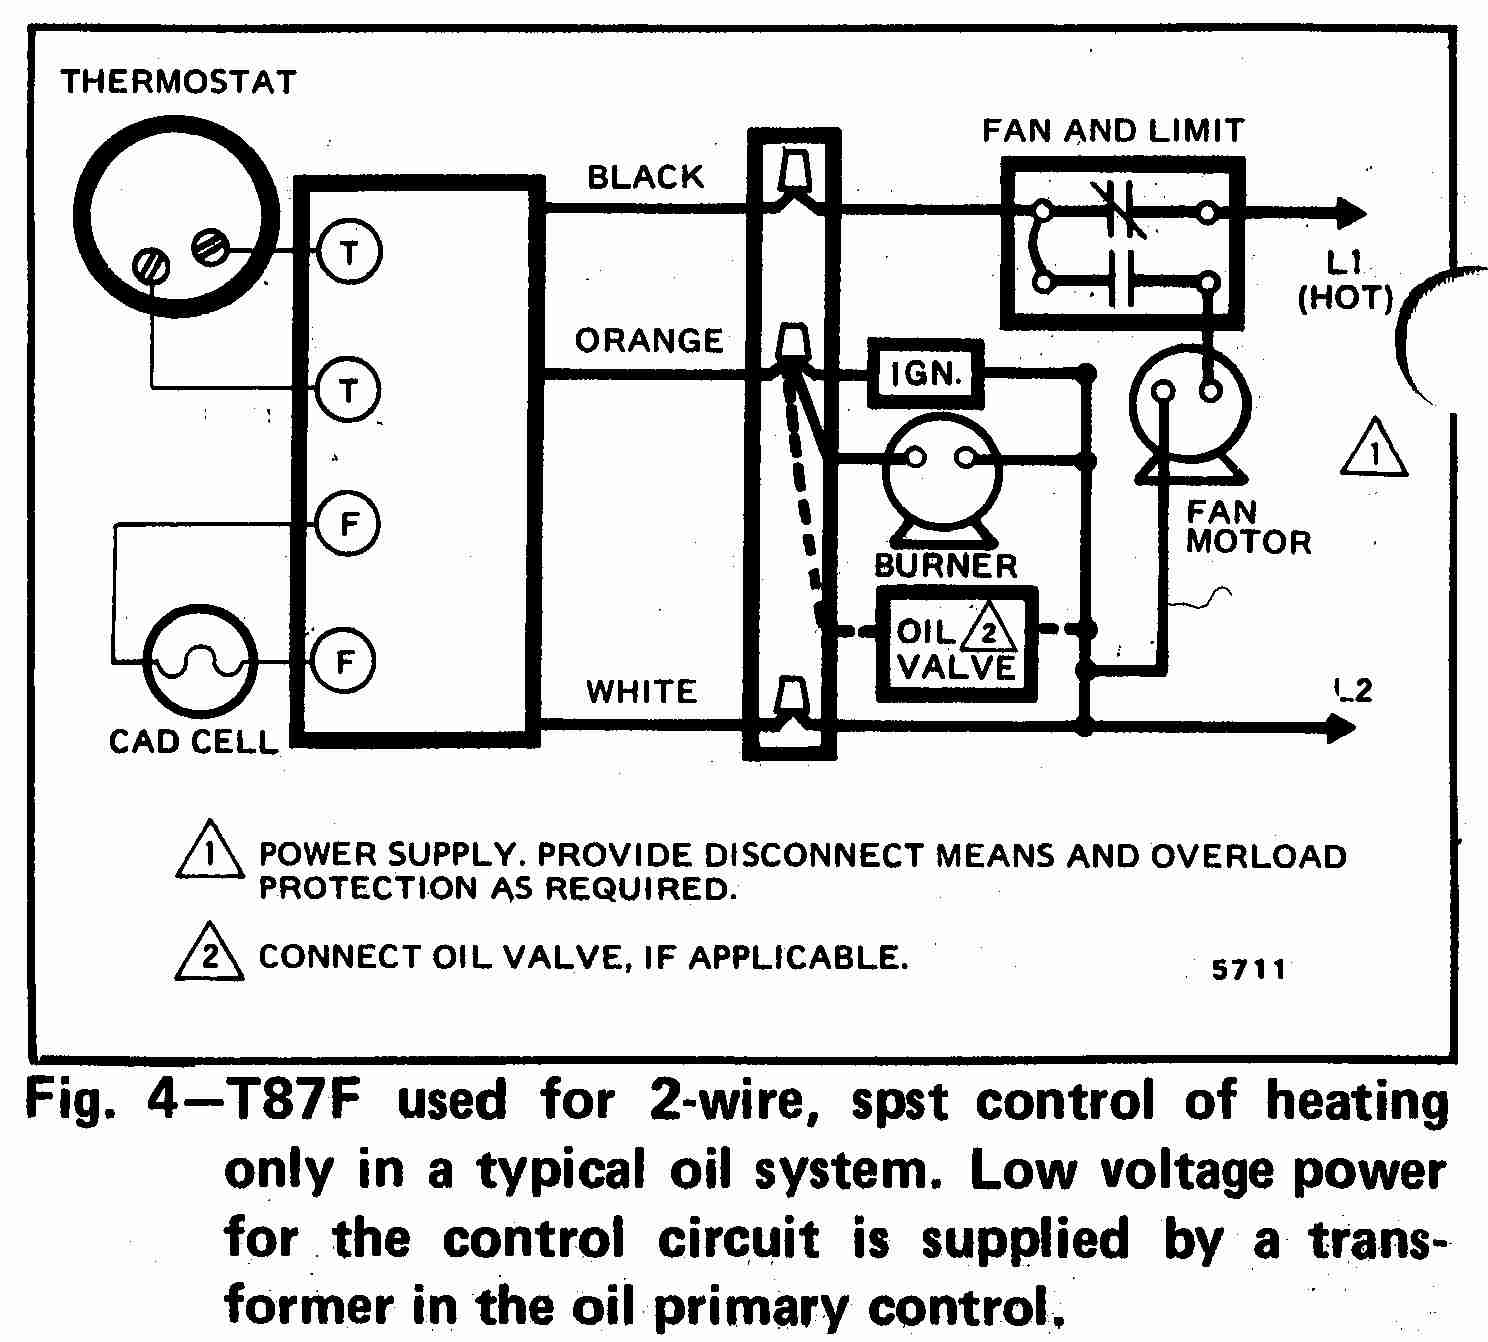 TT_T87F_0002_2W_DJF room thermostat wiring diagrams for hvac systems Basic Outlet Wiring Diagrams at mr168.co